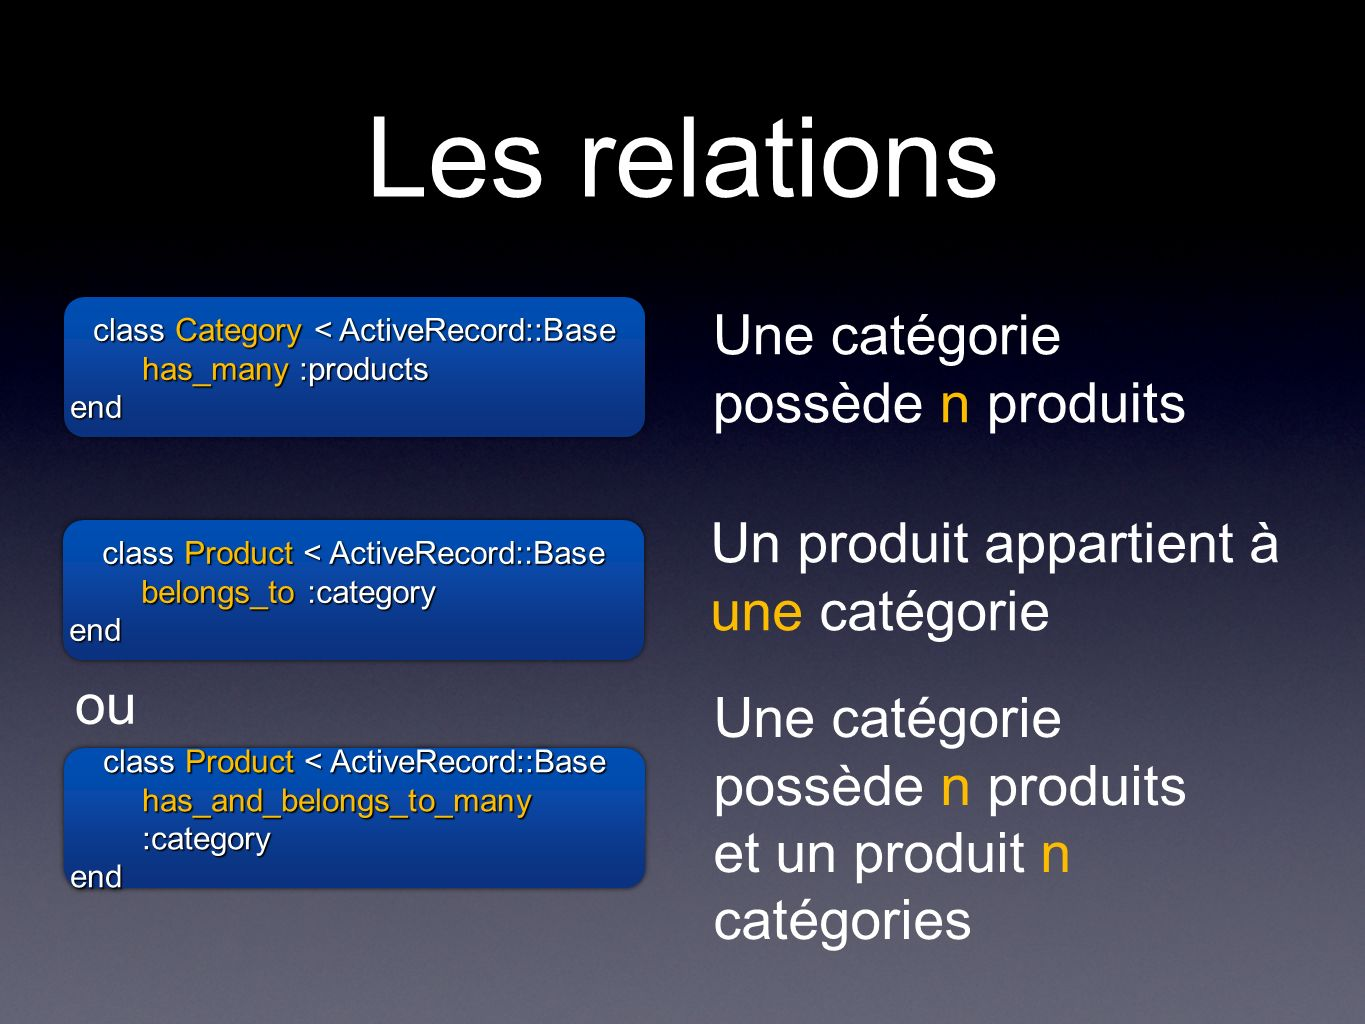 Les relations class Category < ActiveRecord::Base has_many :products end class Category < ActiveRecord::Base has_many :products end Une catégorie possède n produits class Product < ActiveRecord::Base belongs_to :category end class Product < ActiveRecord::Base belongs_to :category end Un produit appartient à une catégorie class Product < ActiveRecord::Base has_and_belongs_to_many :category end class Product < ActiveRecord::Base has_and_belongs_to_many :category end Une catégorie possède n produits et un produit n catégories ou